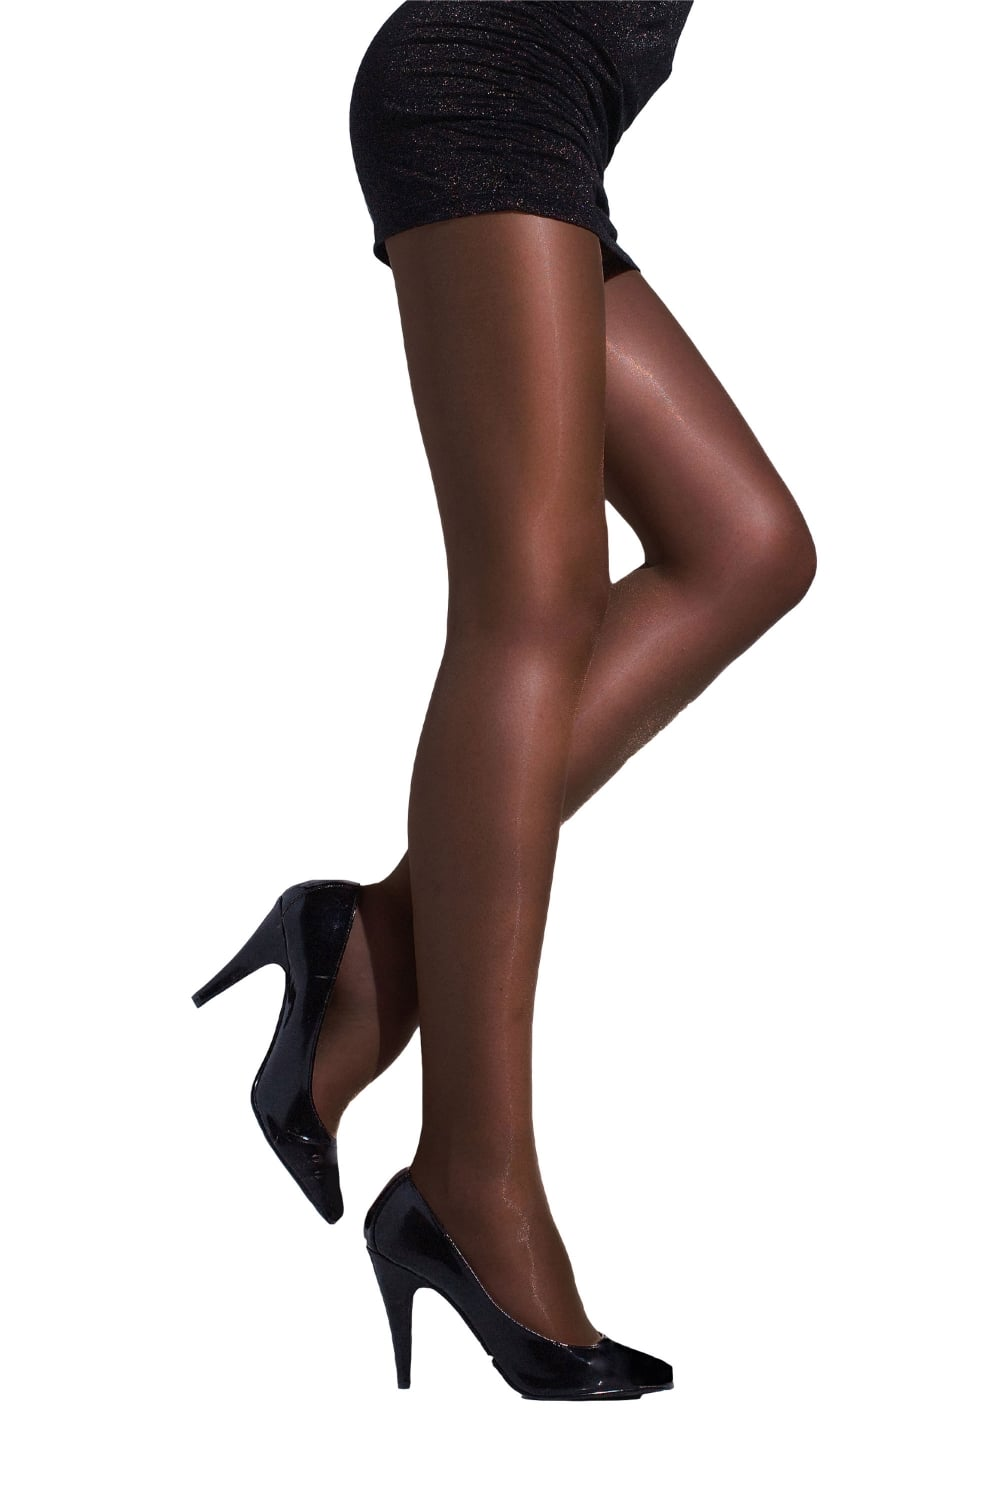 ececcca257f83 Andrea Bucci 15 Denier Gloss Luxury High Sheen Tights